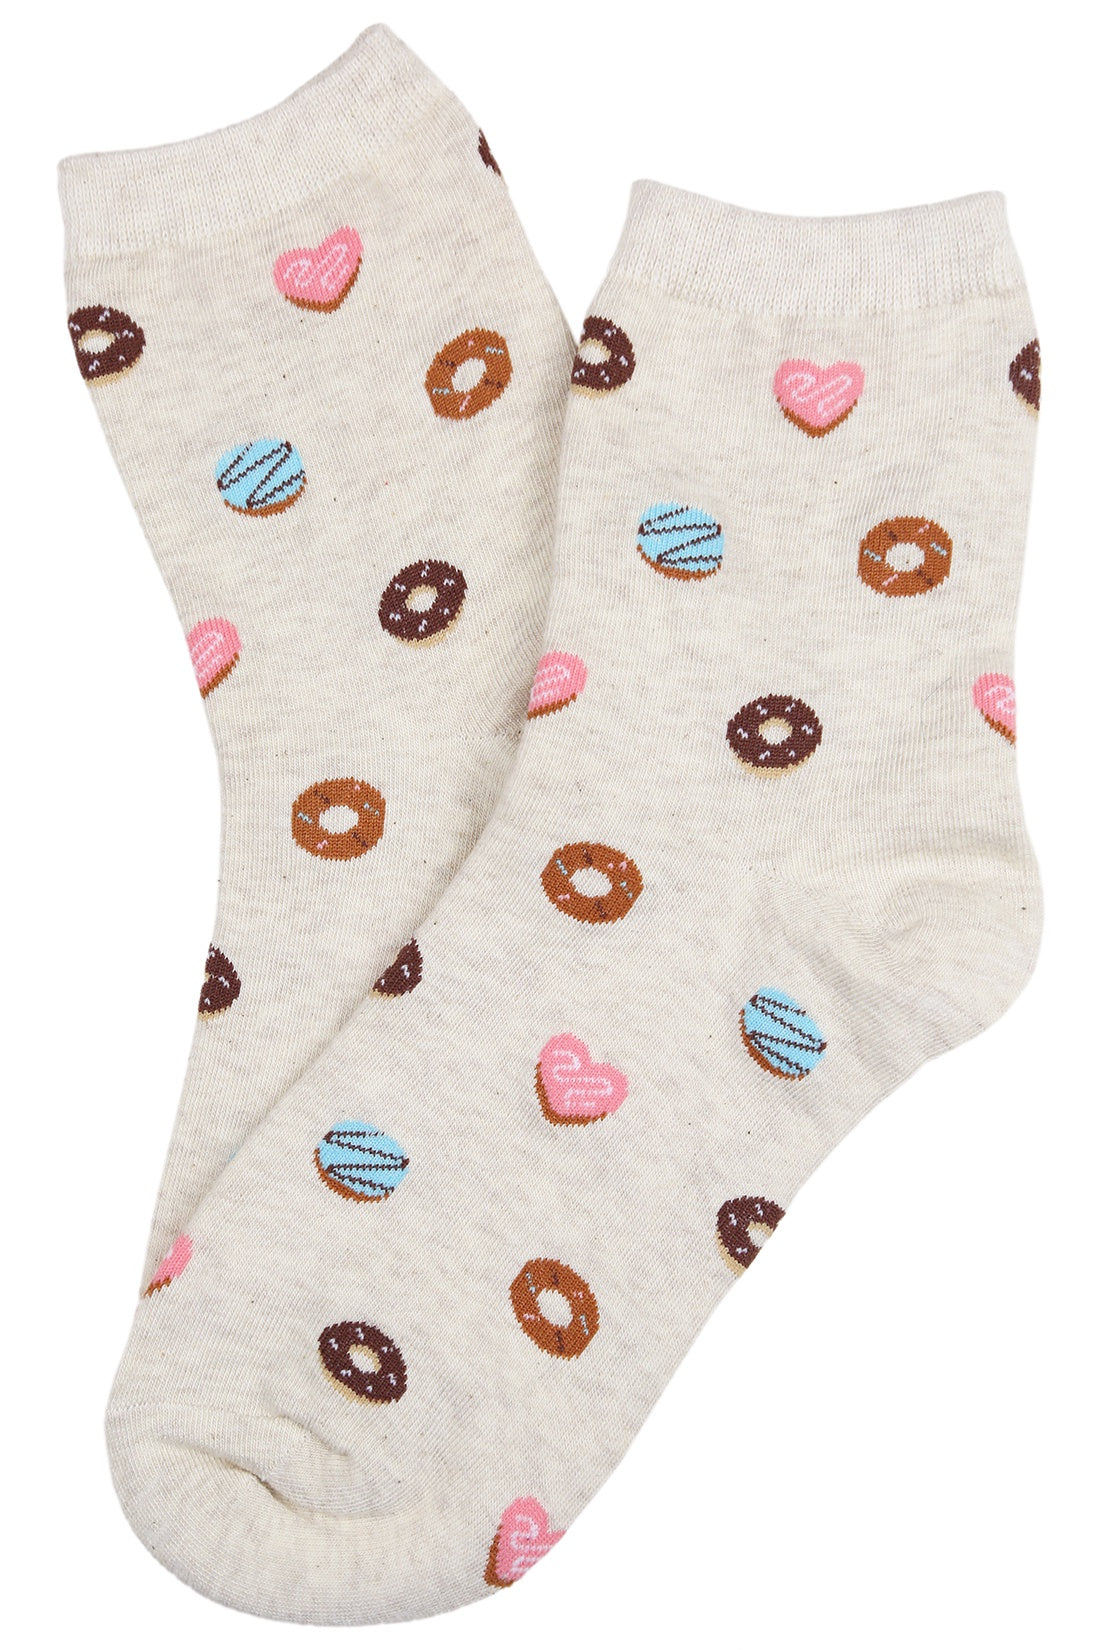 Mmmm Donuts Cotton Socks